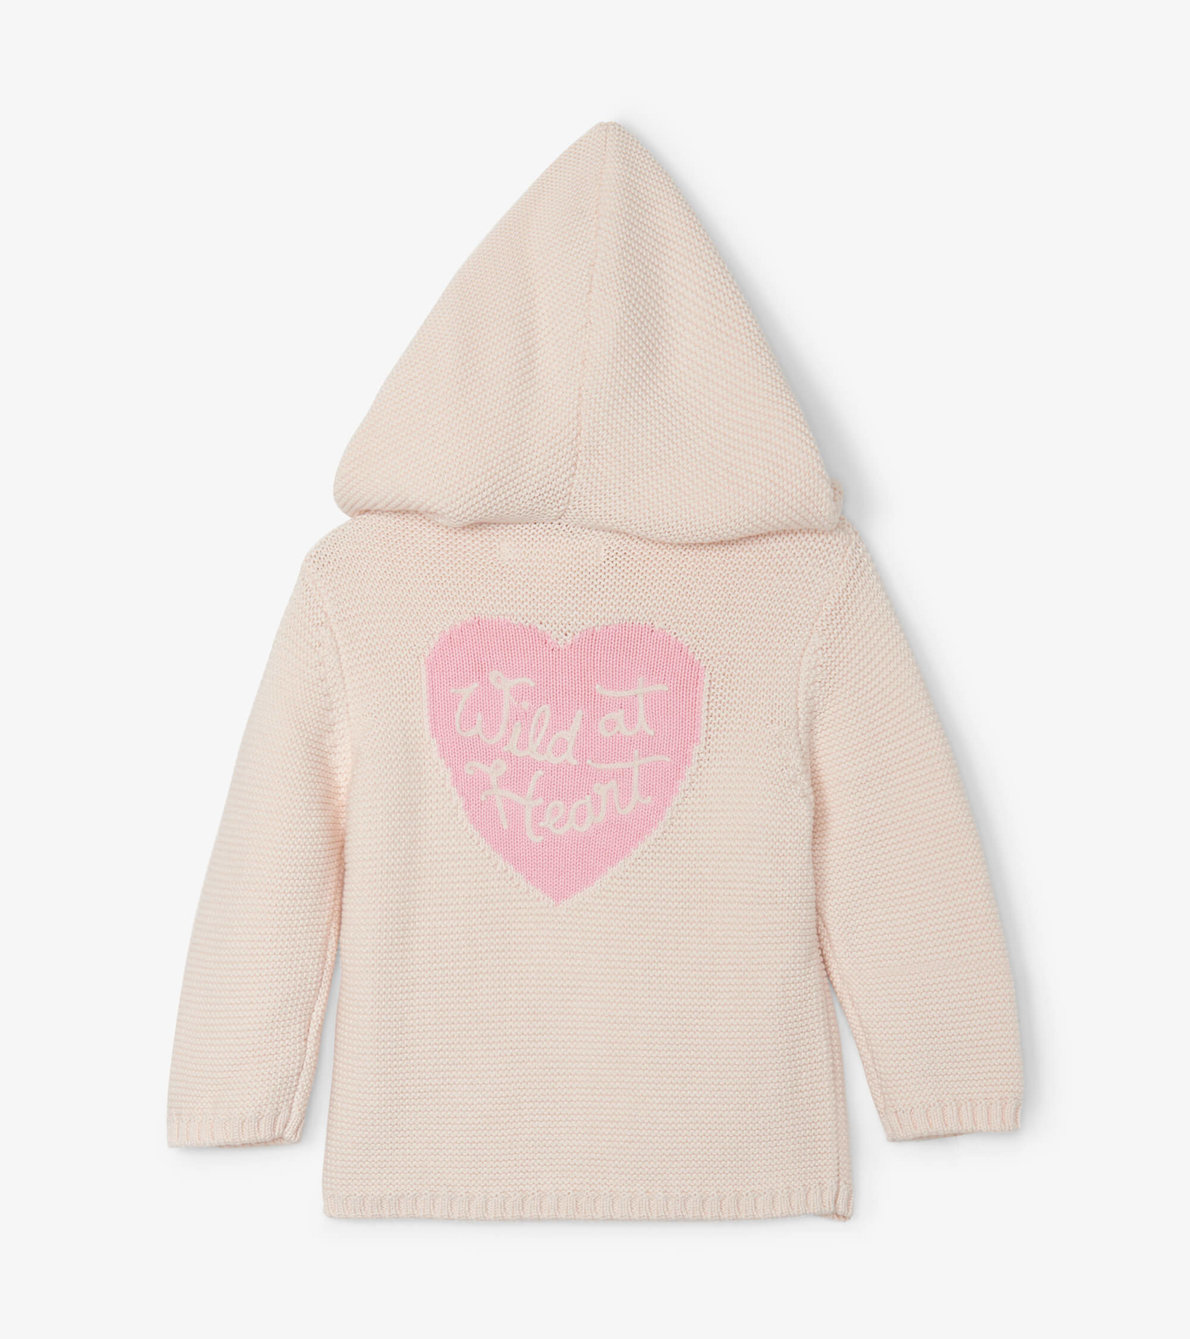 View larger image of Wild Heart Baby Hooded Sweater